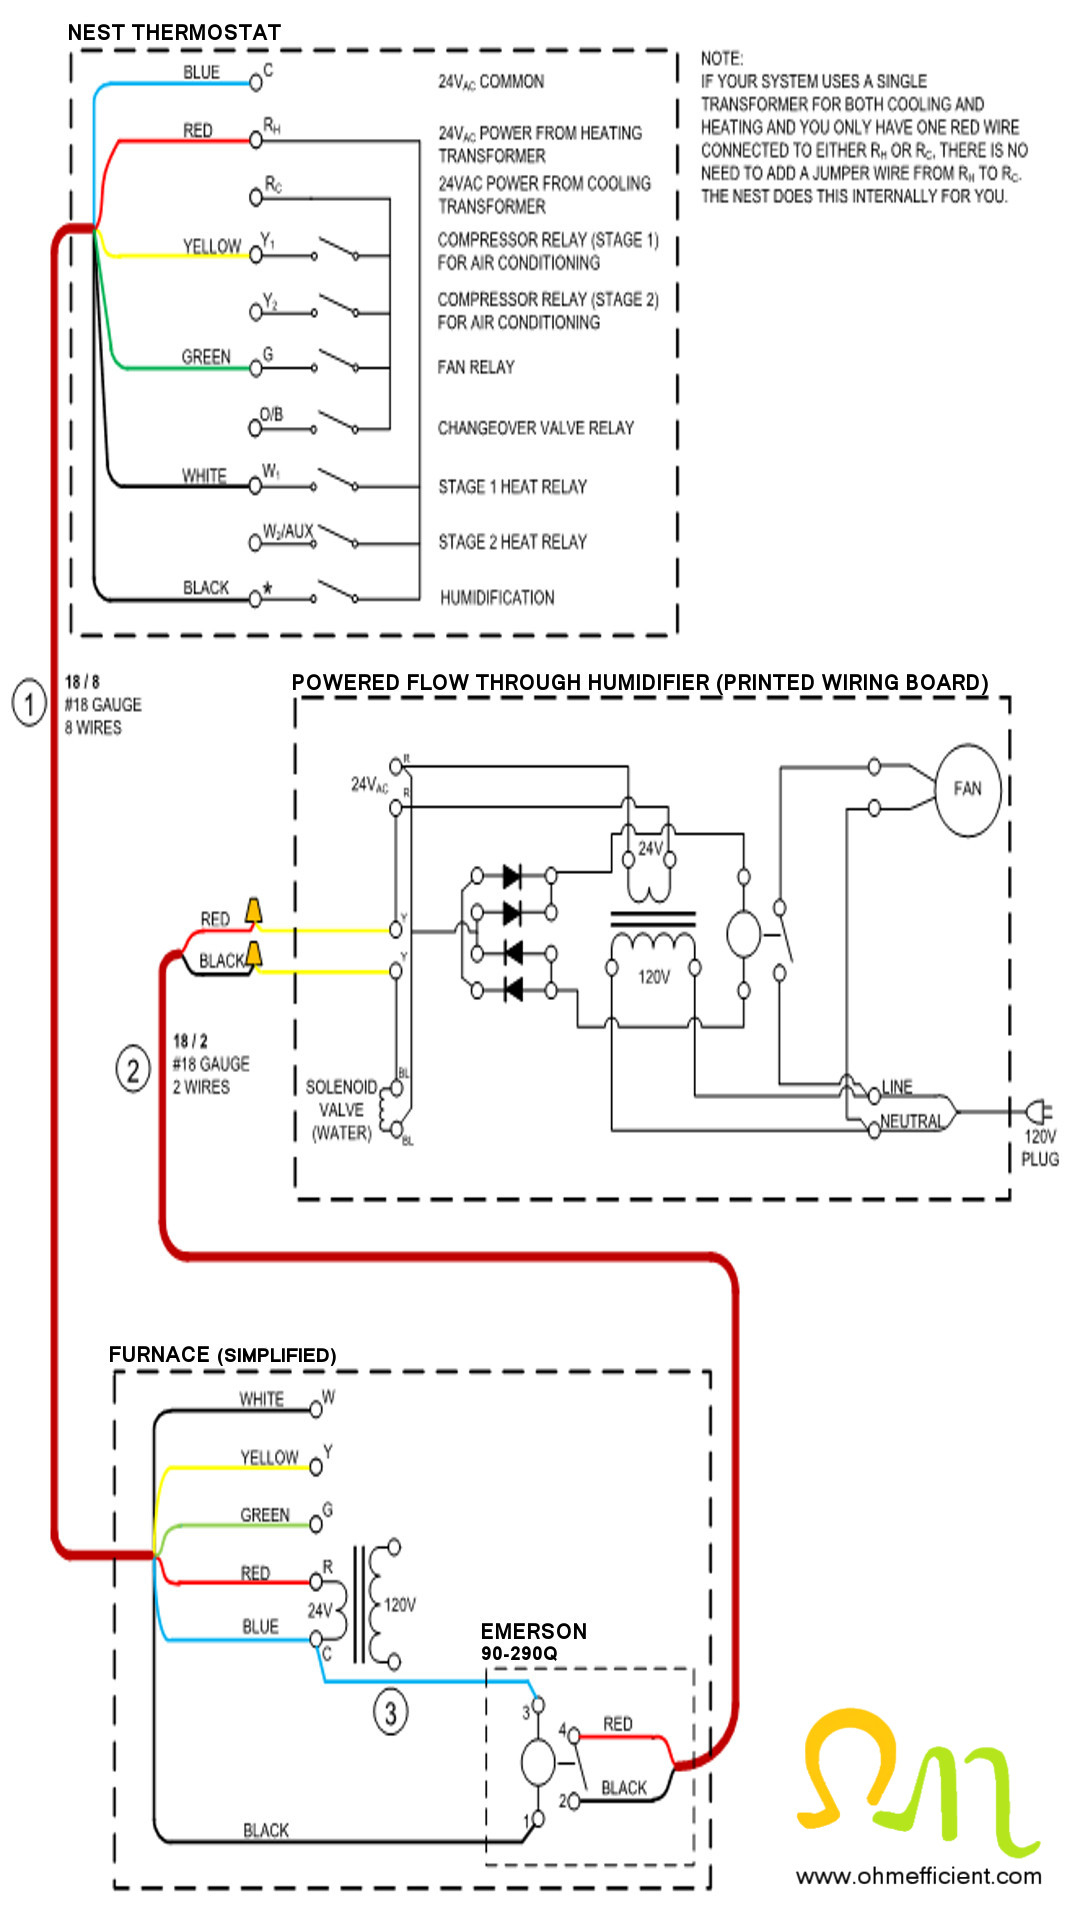 How To Connect & Setup A Nest Thermostat To Function As A Humidistat  Stage Heat Cool Thermostat Wiring Diagram on booster pump installation diagram, 2 stage thermostat operation, 2 stage thermostat fan setting, 2 stage thermostat for furnace, thermostat circuit diagram, home thermostat diagram, hydraulic pump diagram, 2 stage fire pump, 2 stage thermostat faqs, 2 stage thermostat home depot, 2 stage air conditioner diagram, 2 stage heat thermostat, 2 stage compressor diagram,